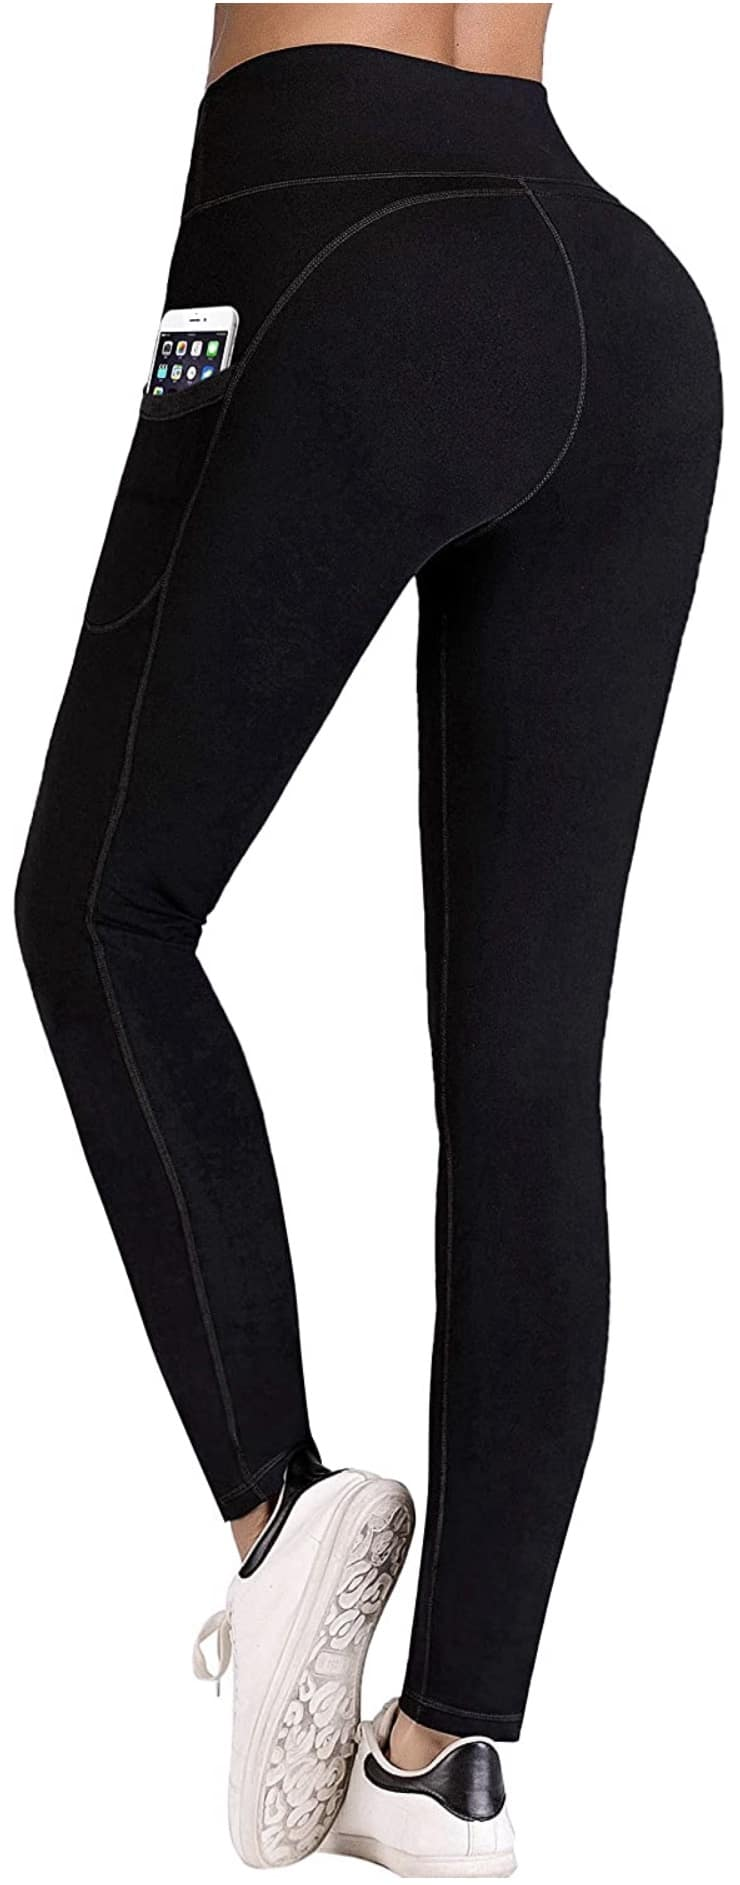 High Waist Workout Pants with Pockets, Tummy Control